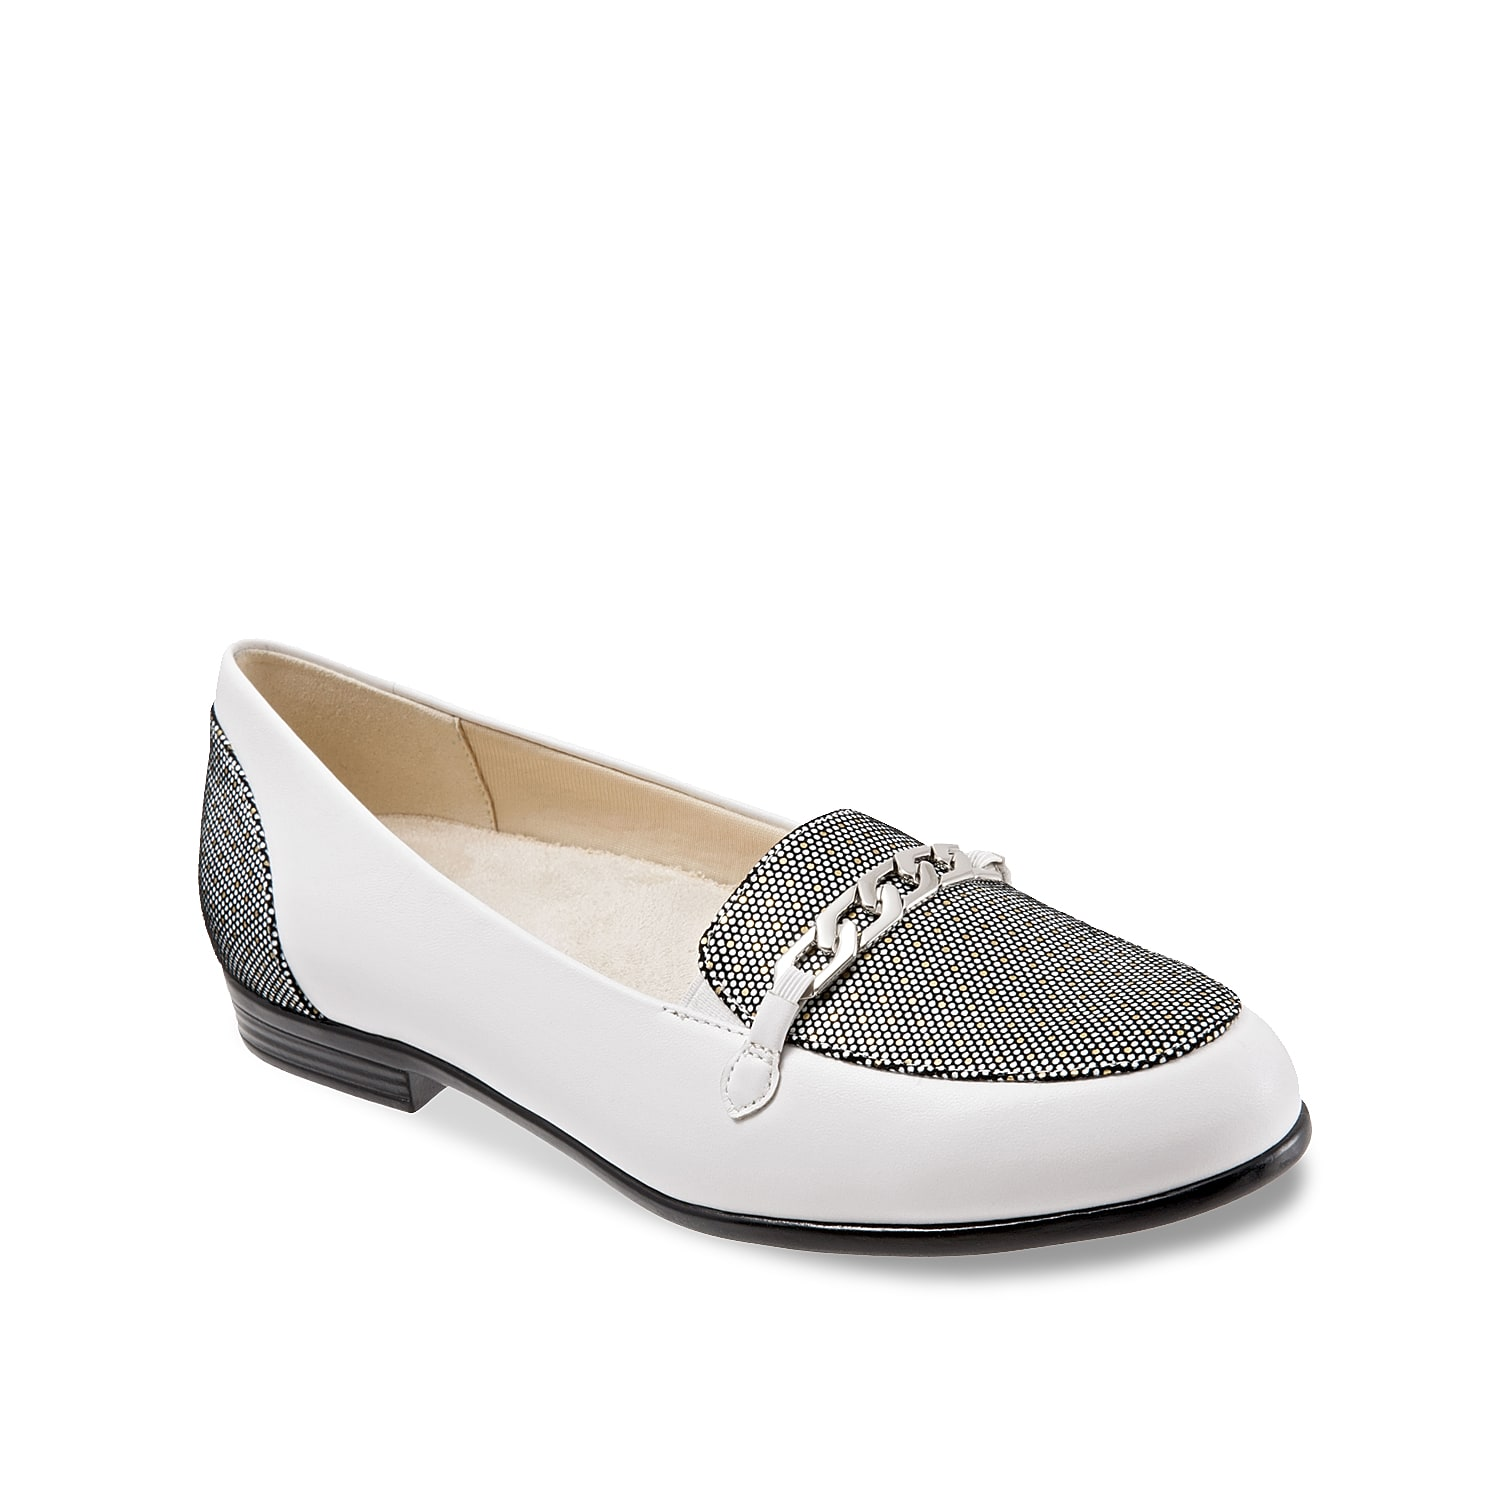 Get the perfect streamlined look with the Anastasia loafer from Trotters. Highlighted with textured accents and a decorative chain ornament, this elegant slip-on features antimicrobial lining and a low profile heel for all day comfort.